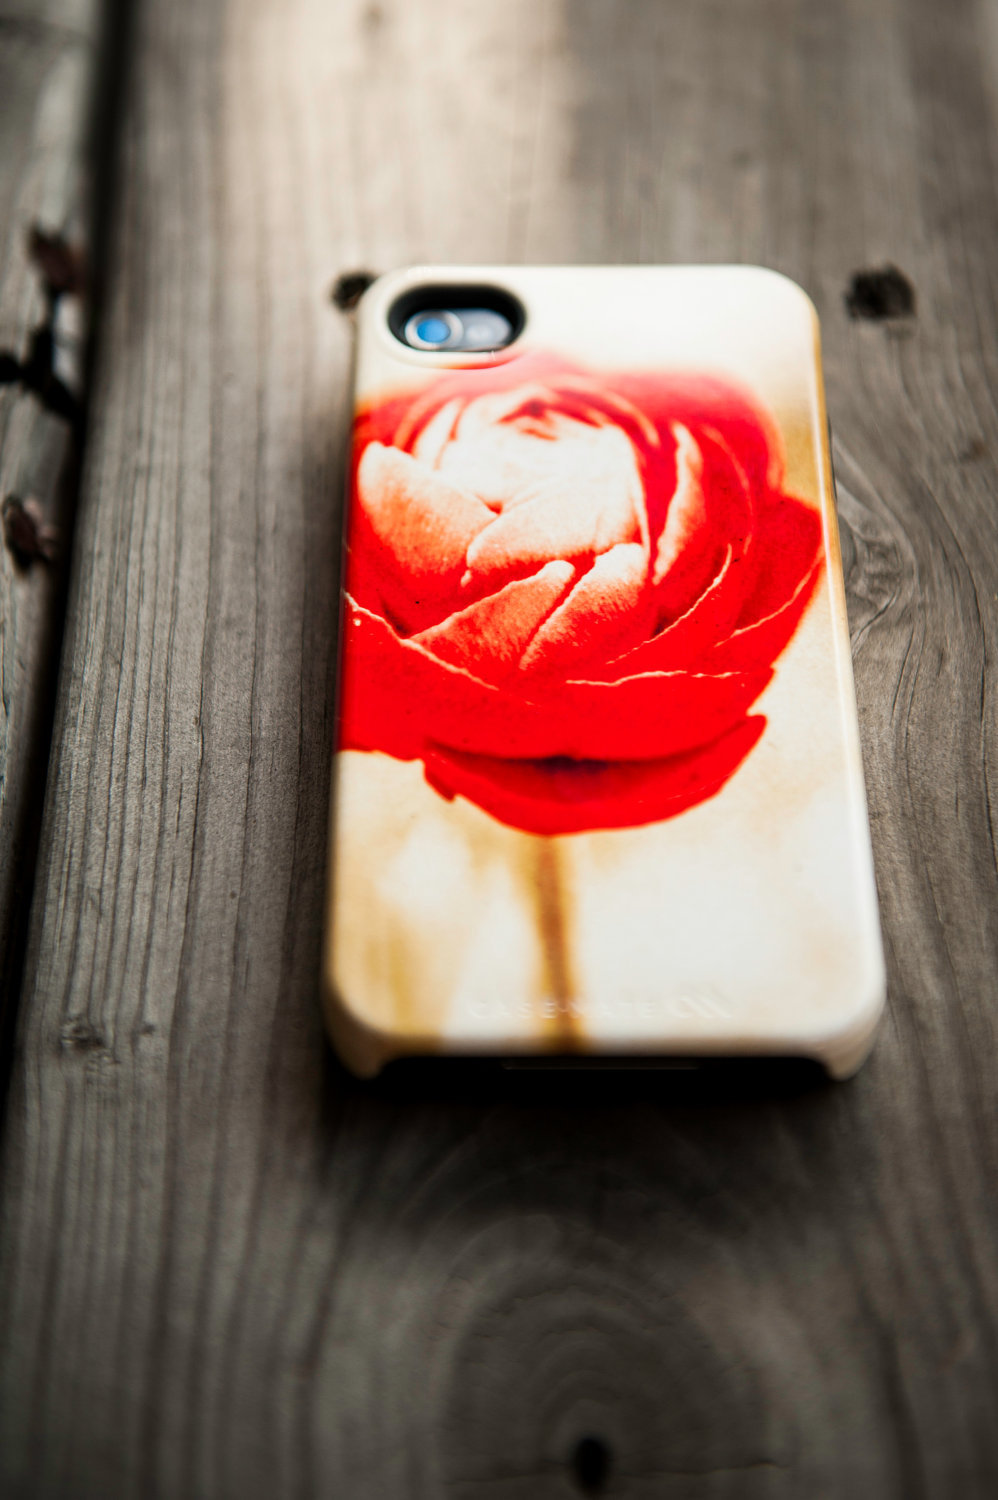 Favorite-iphone-cases-for-brides-modern-tech-weddings-4-ruby-rose.full